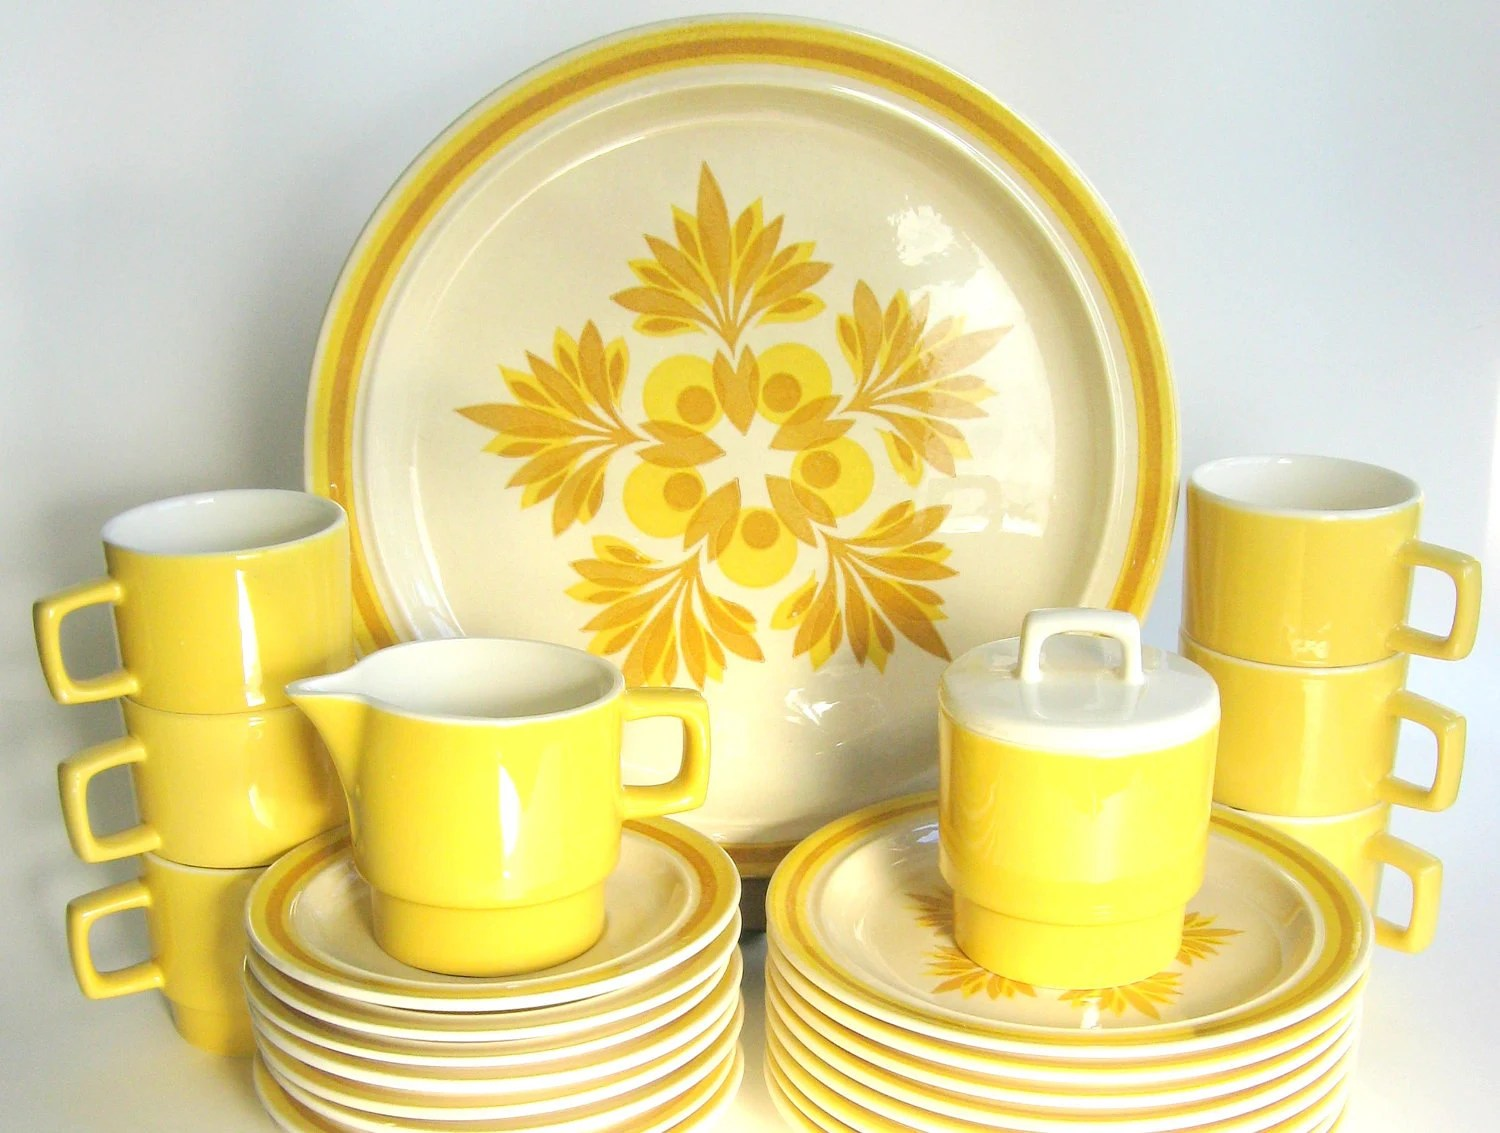 Reserved For C Vintage 1970s Royal China Dinnerware Set 26